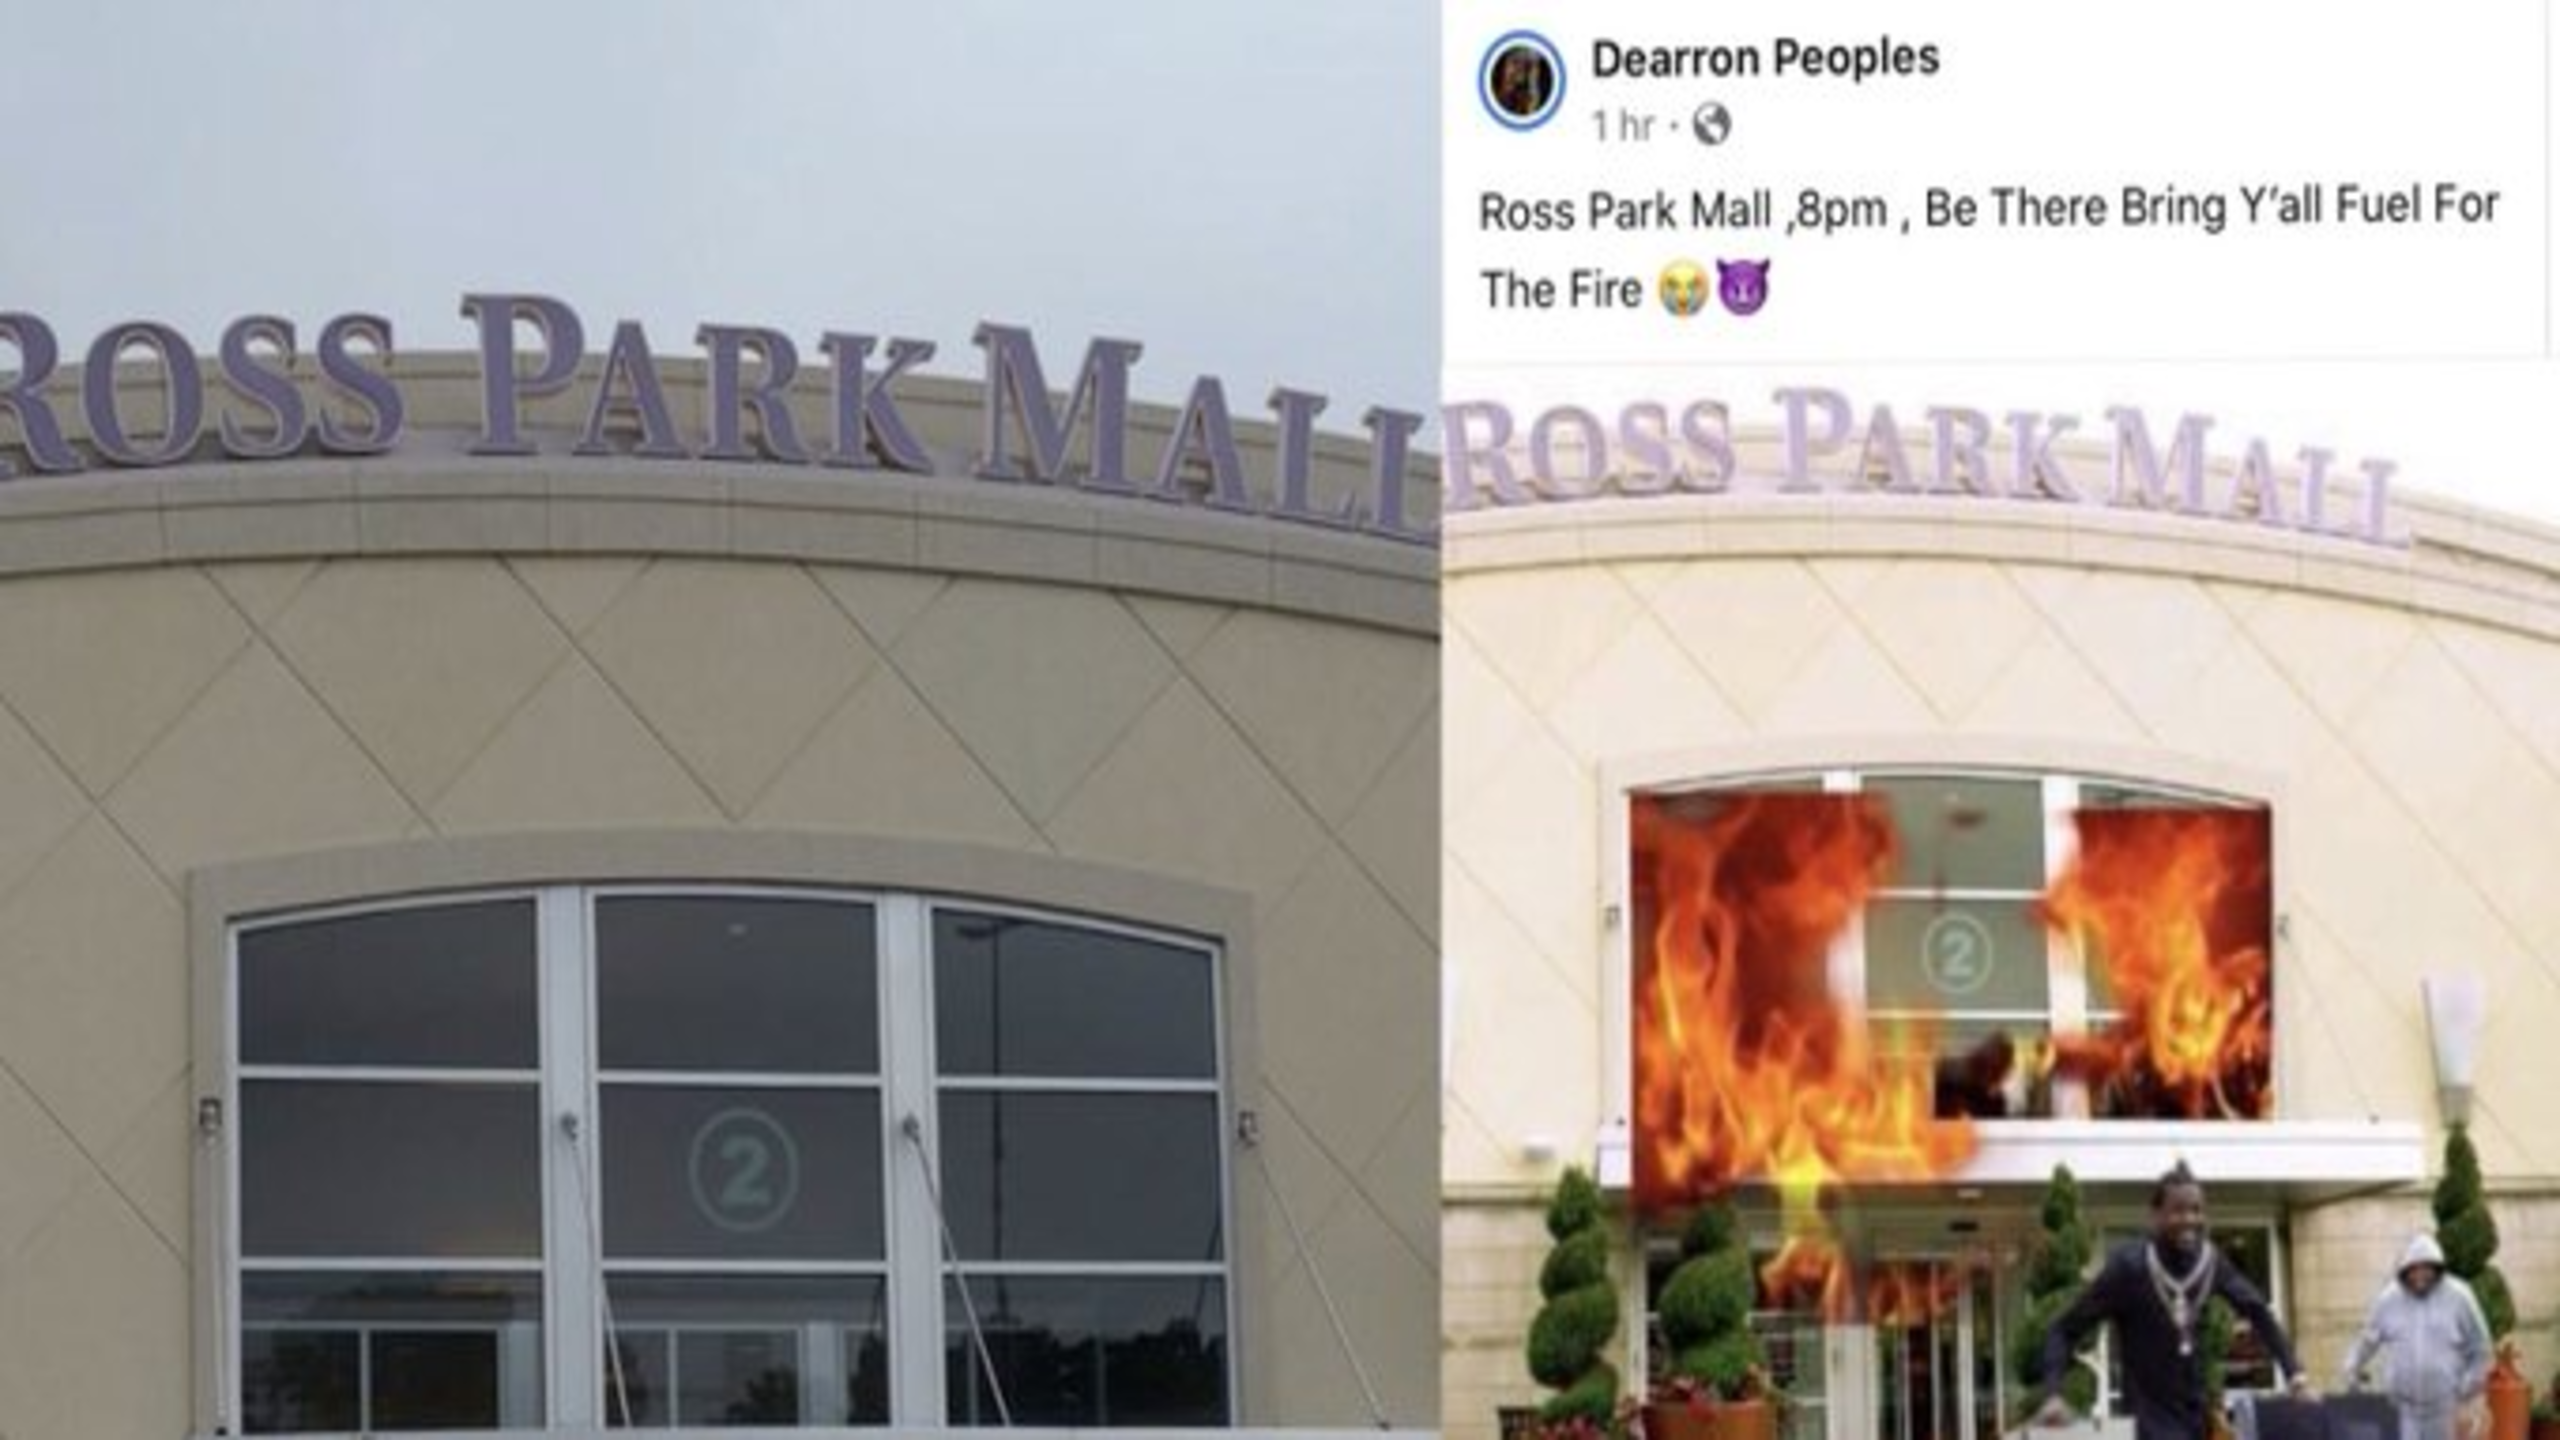 """Ross park mall under high security after Facebook post """"Bring Y'all fuel"""" at """"Ross park mall at 8 pm"""""""